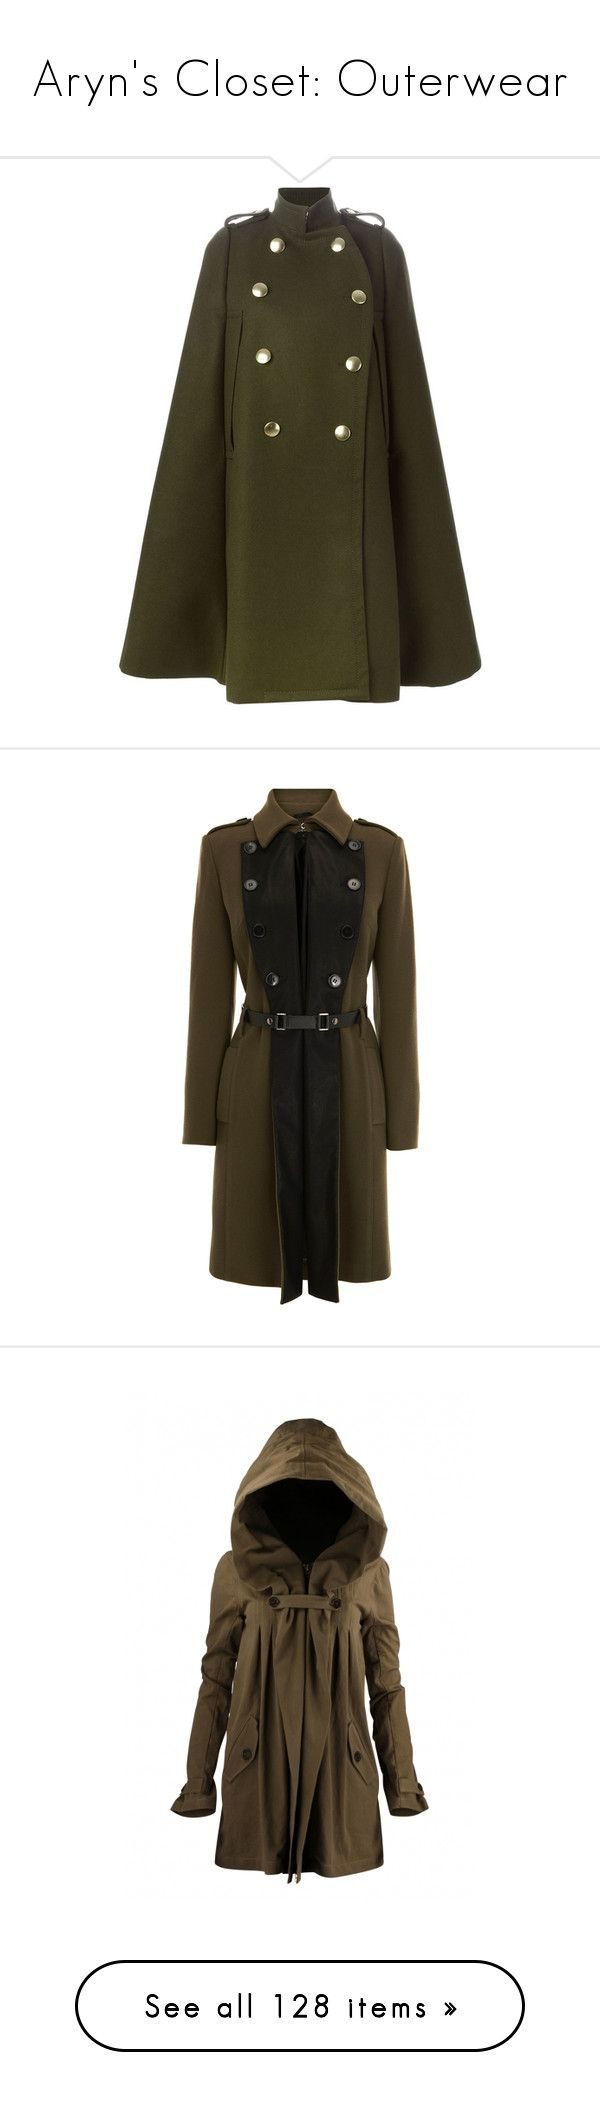 Aryn's Closet: Outerwear by batgirl87 on Polyvore featuring women's fashion, outerwear, coats, cape, jackets, tops, military style coat, cape coat, brown cape and military capes